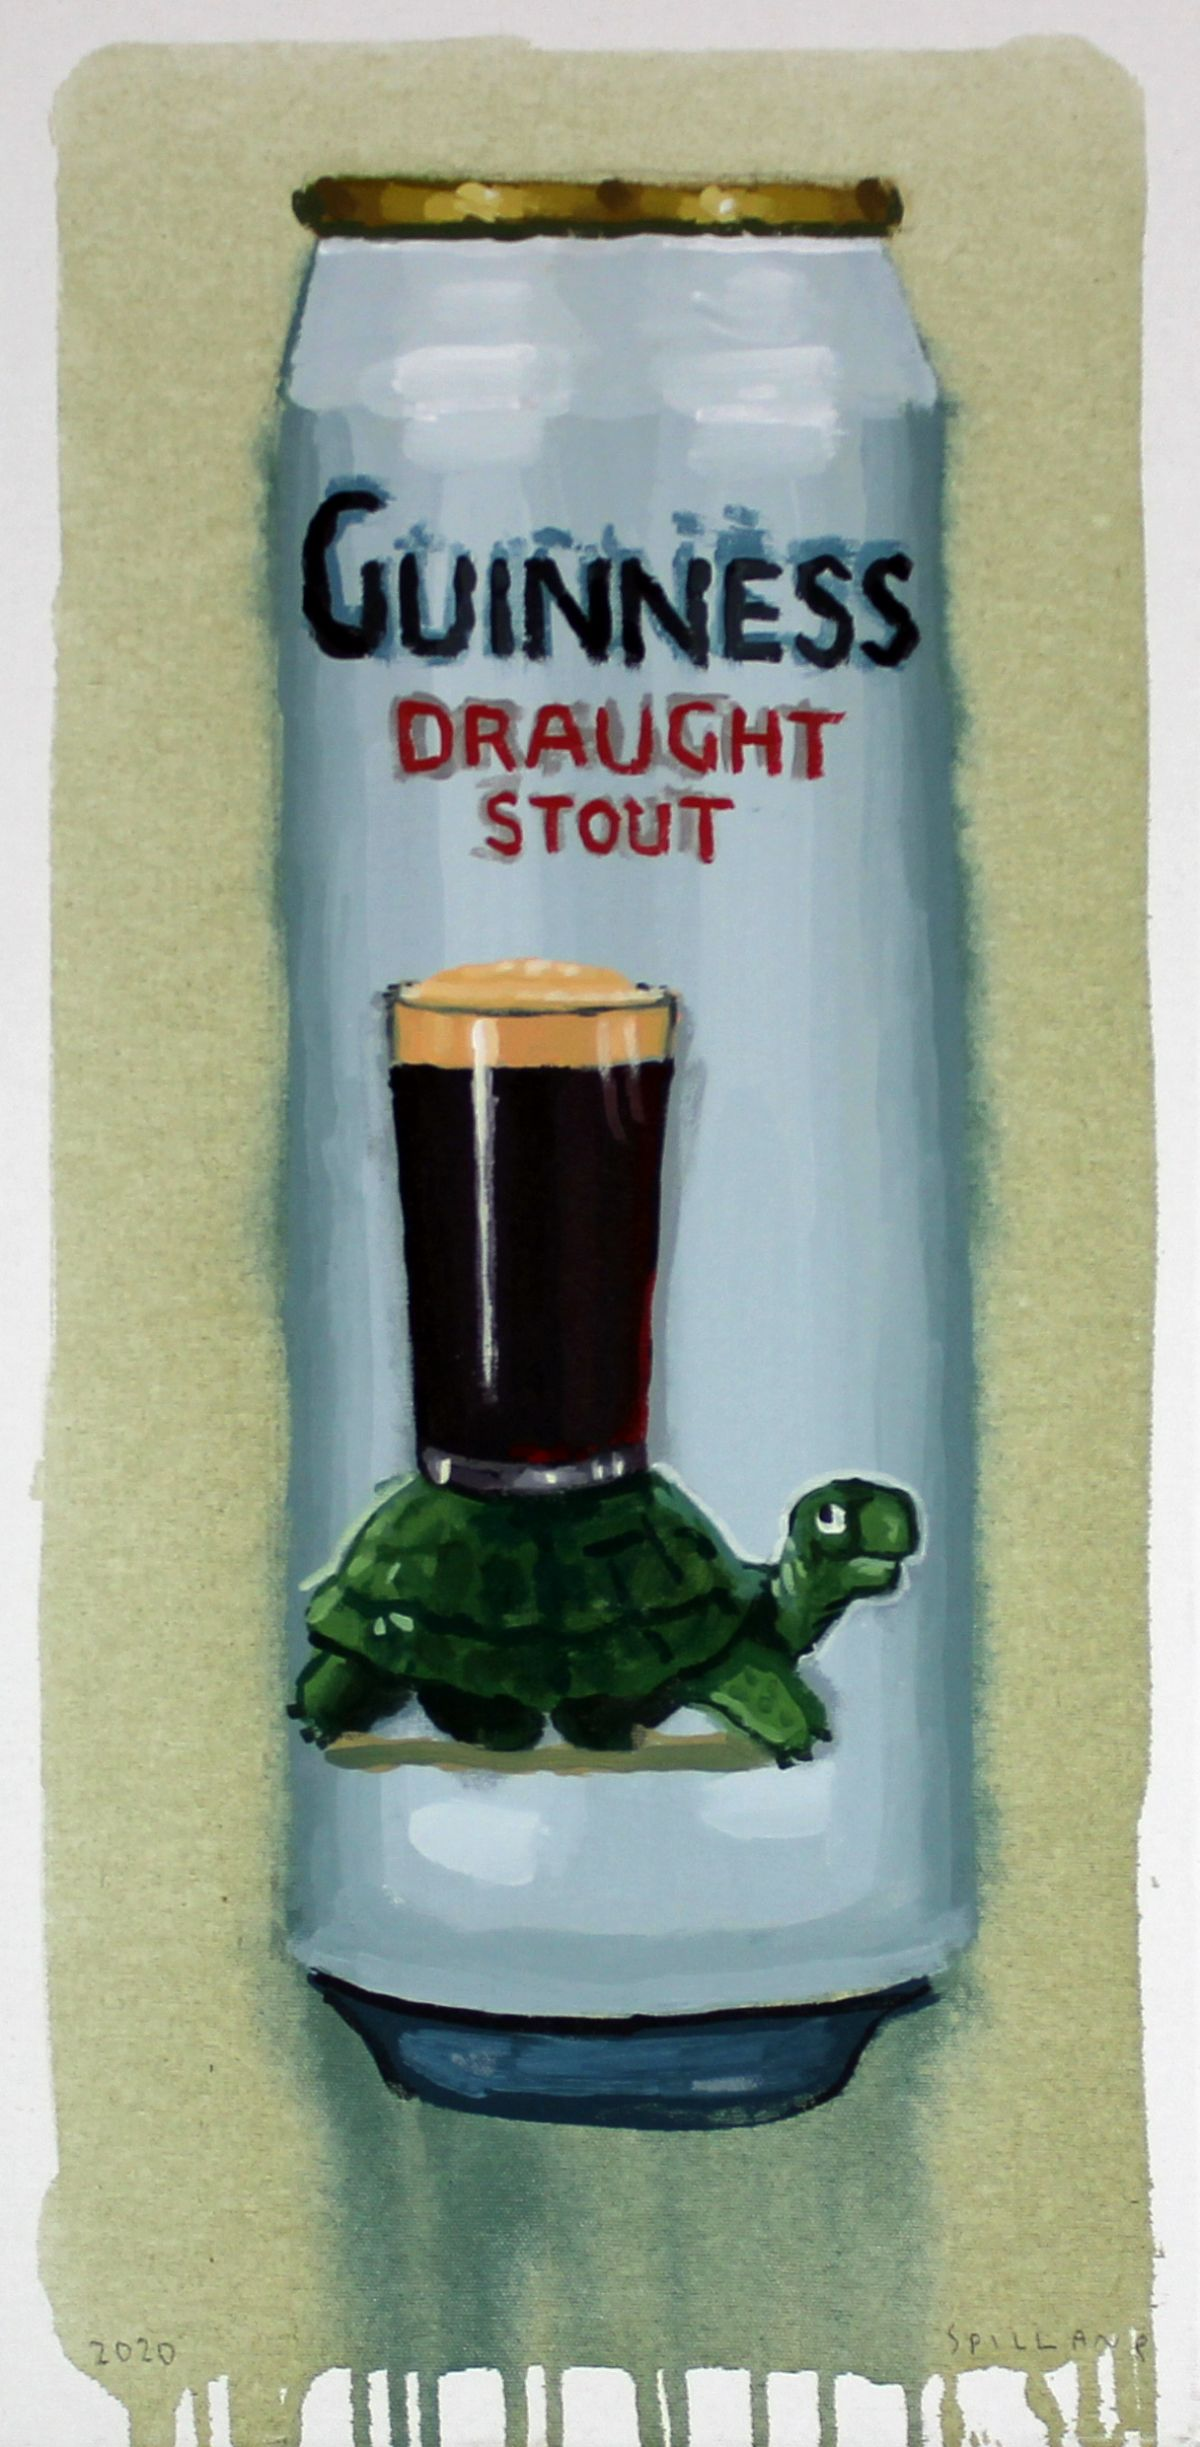 Guiness Draught Stout Can -  Spillane